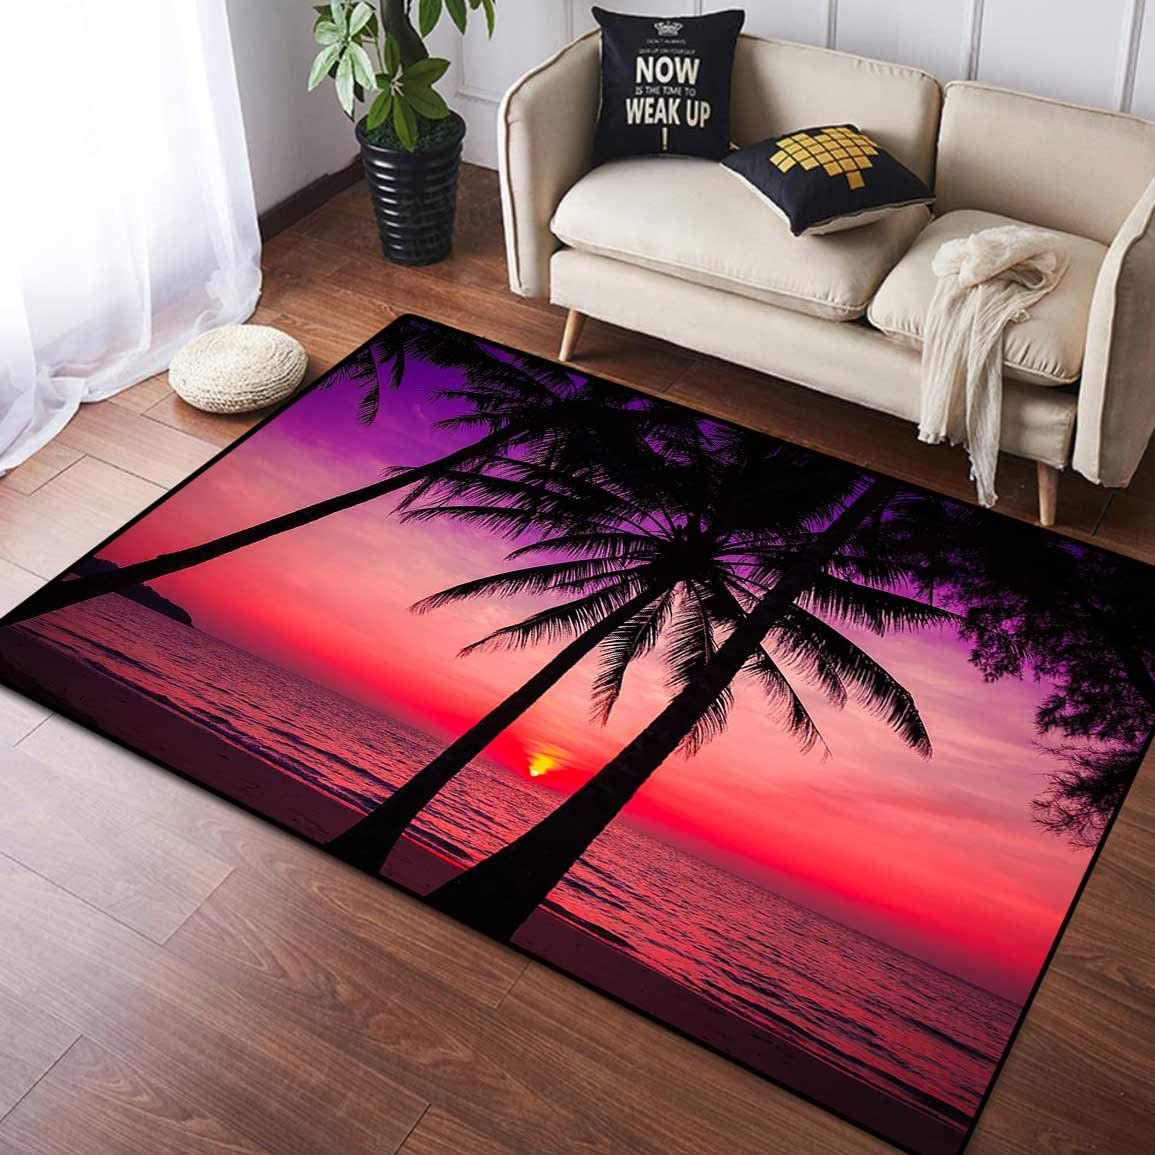 Living Room Door Mat Bedroom Floor Mat Area Rug Carpet, Palm Trees Silhouette on Sunset Tropical Beach Tropical Sunset, Floor Rugs Mat for Girls Room Kids Nursery and Baby, 4.8' x 6.6'